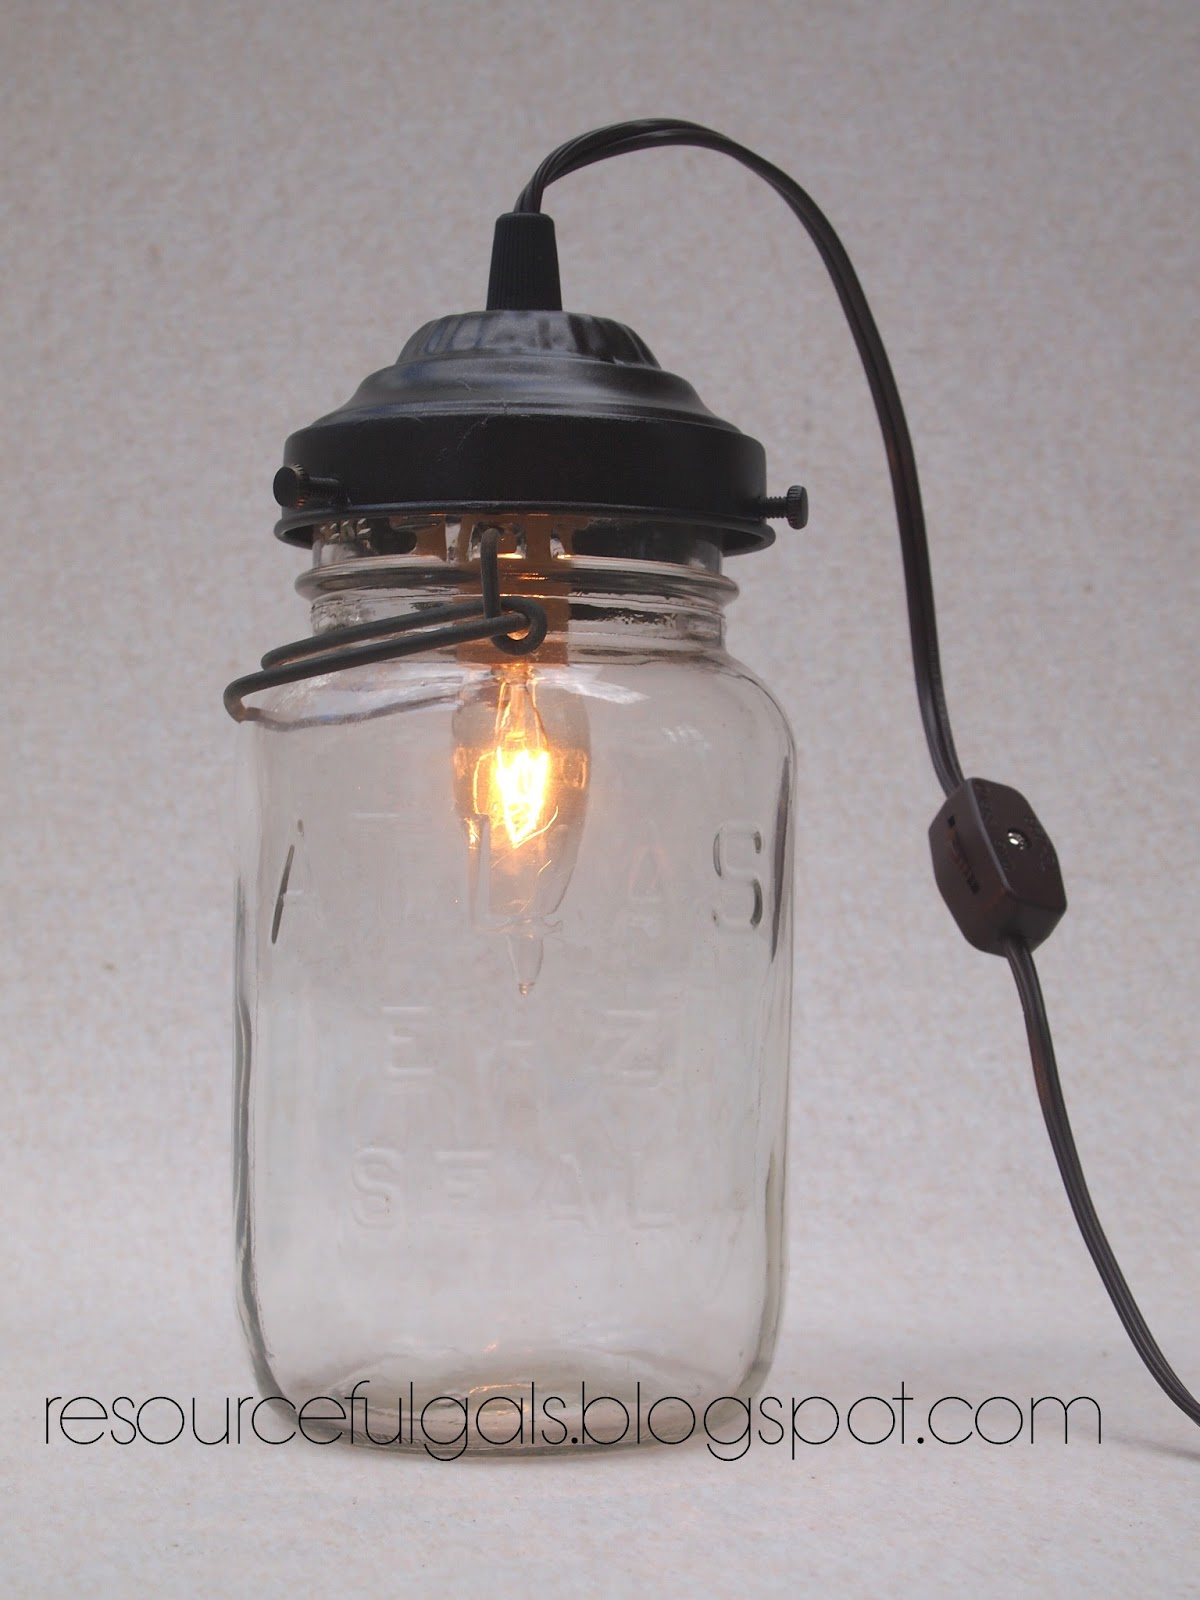 The Resourceful Gals: Mason Jar Lamp Tutorial